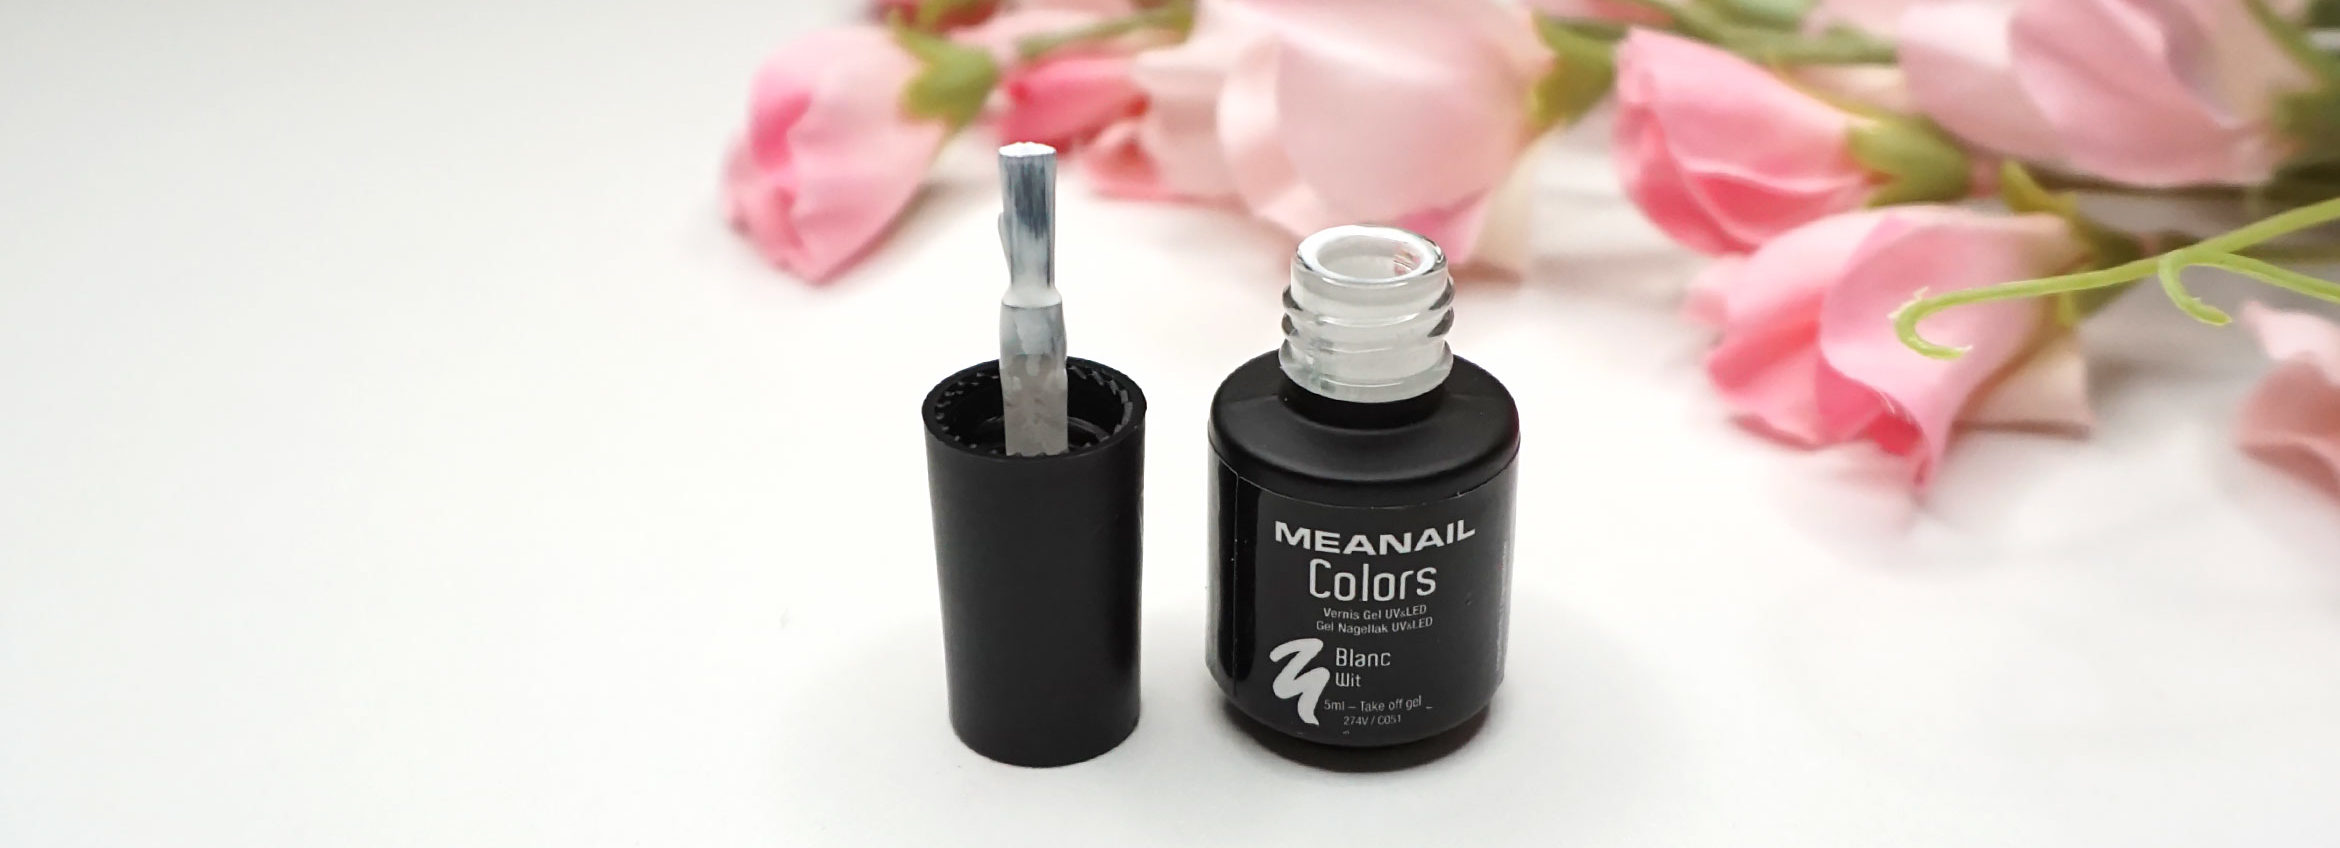 Meanail-starterset-review-blanc